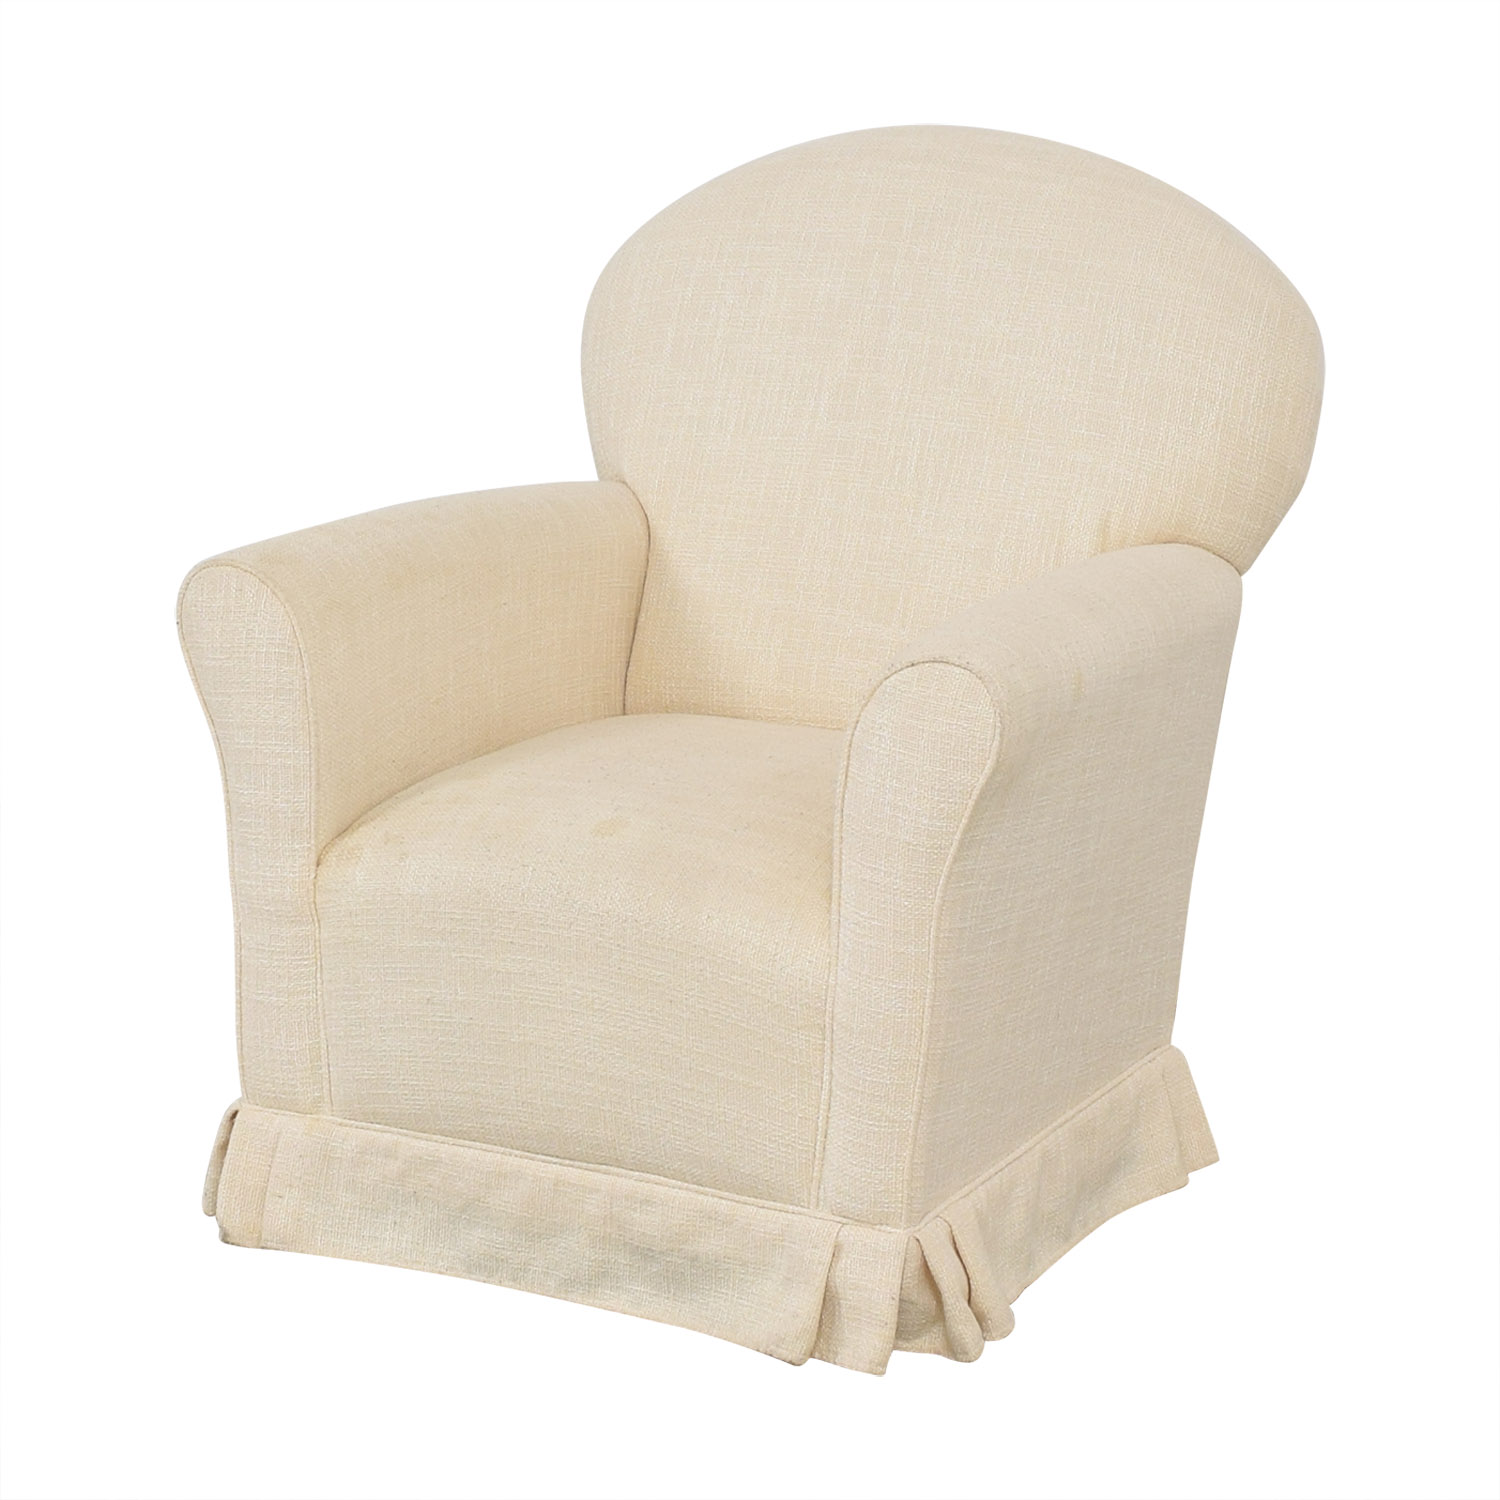 shop Little Castle Furniture Little Castle Furniture Glider Chair and Ottoman online